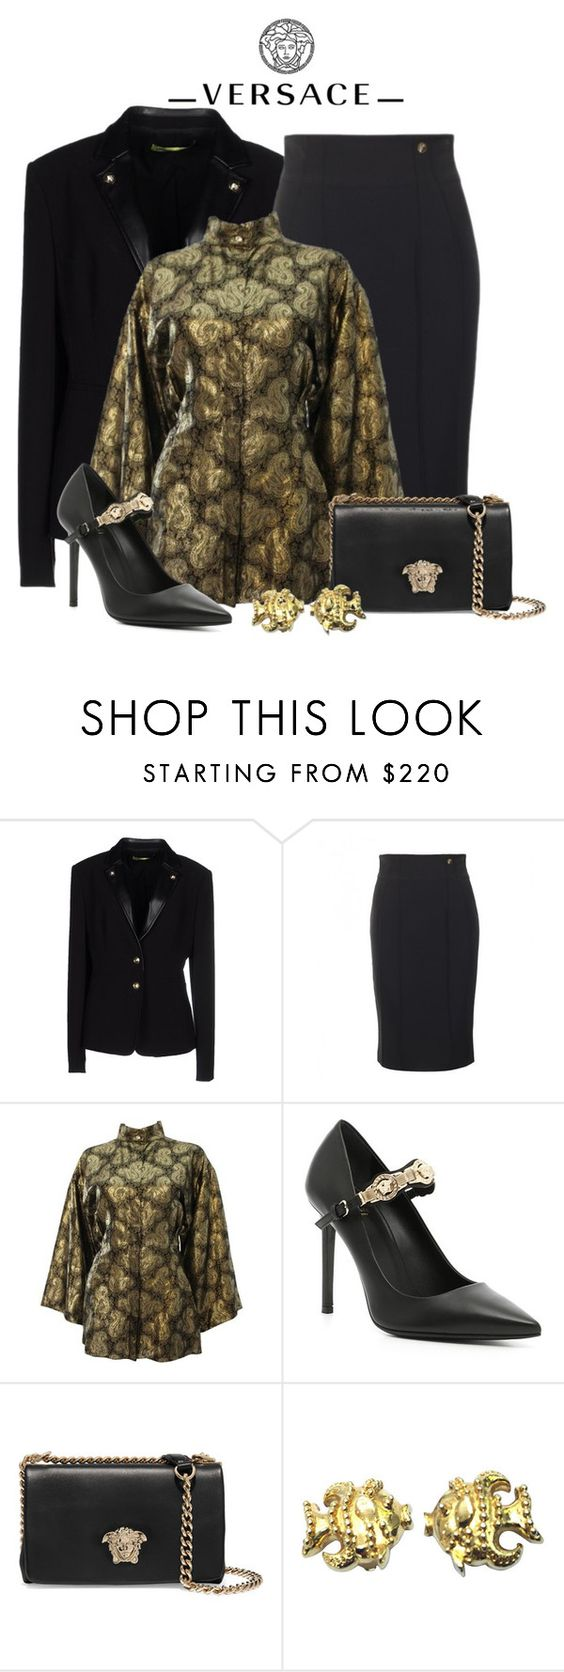 """""""Versace total look"""" by dgia ❤ liked on Polyvore featuring Versace"""